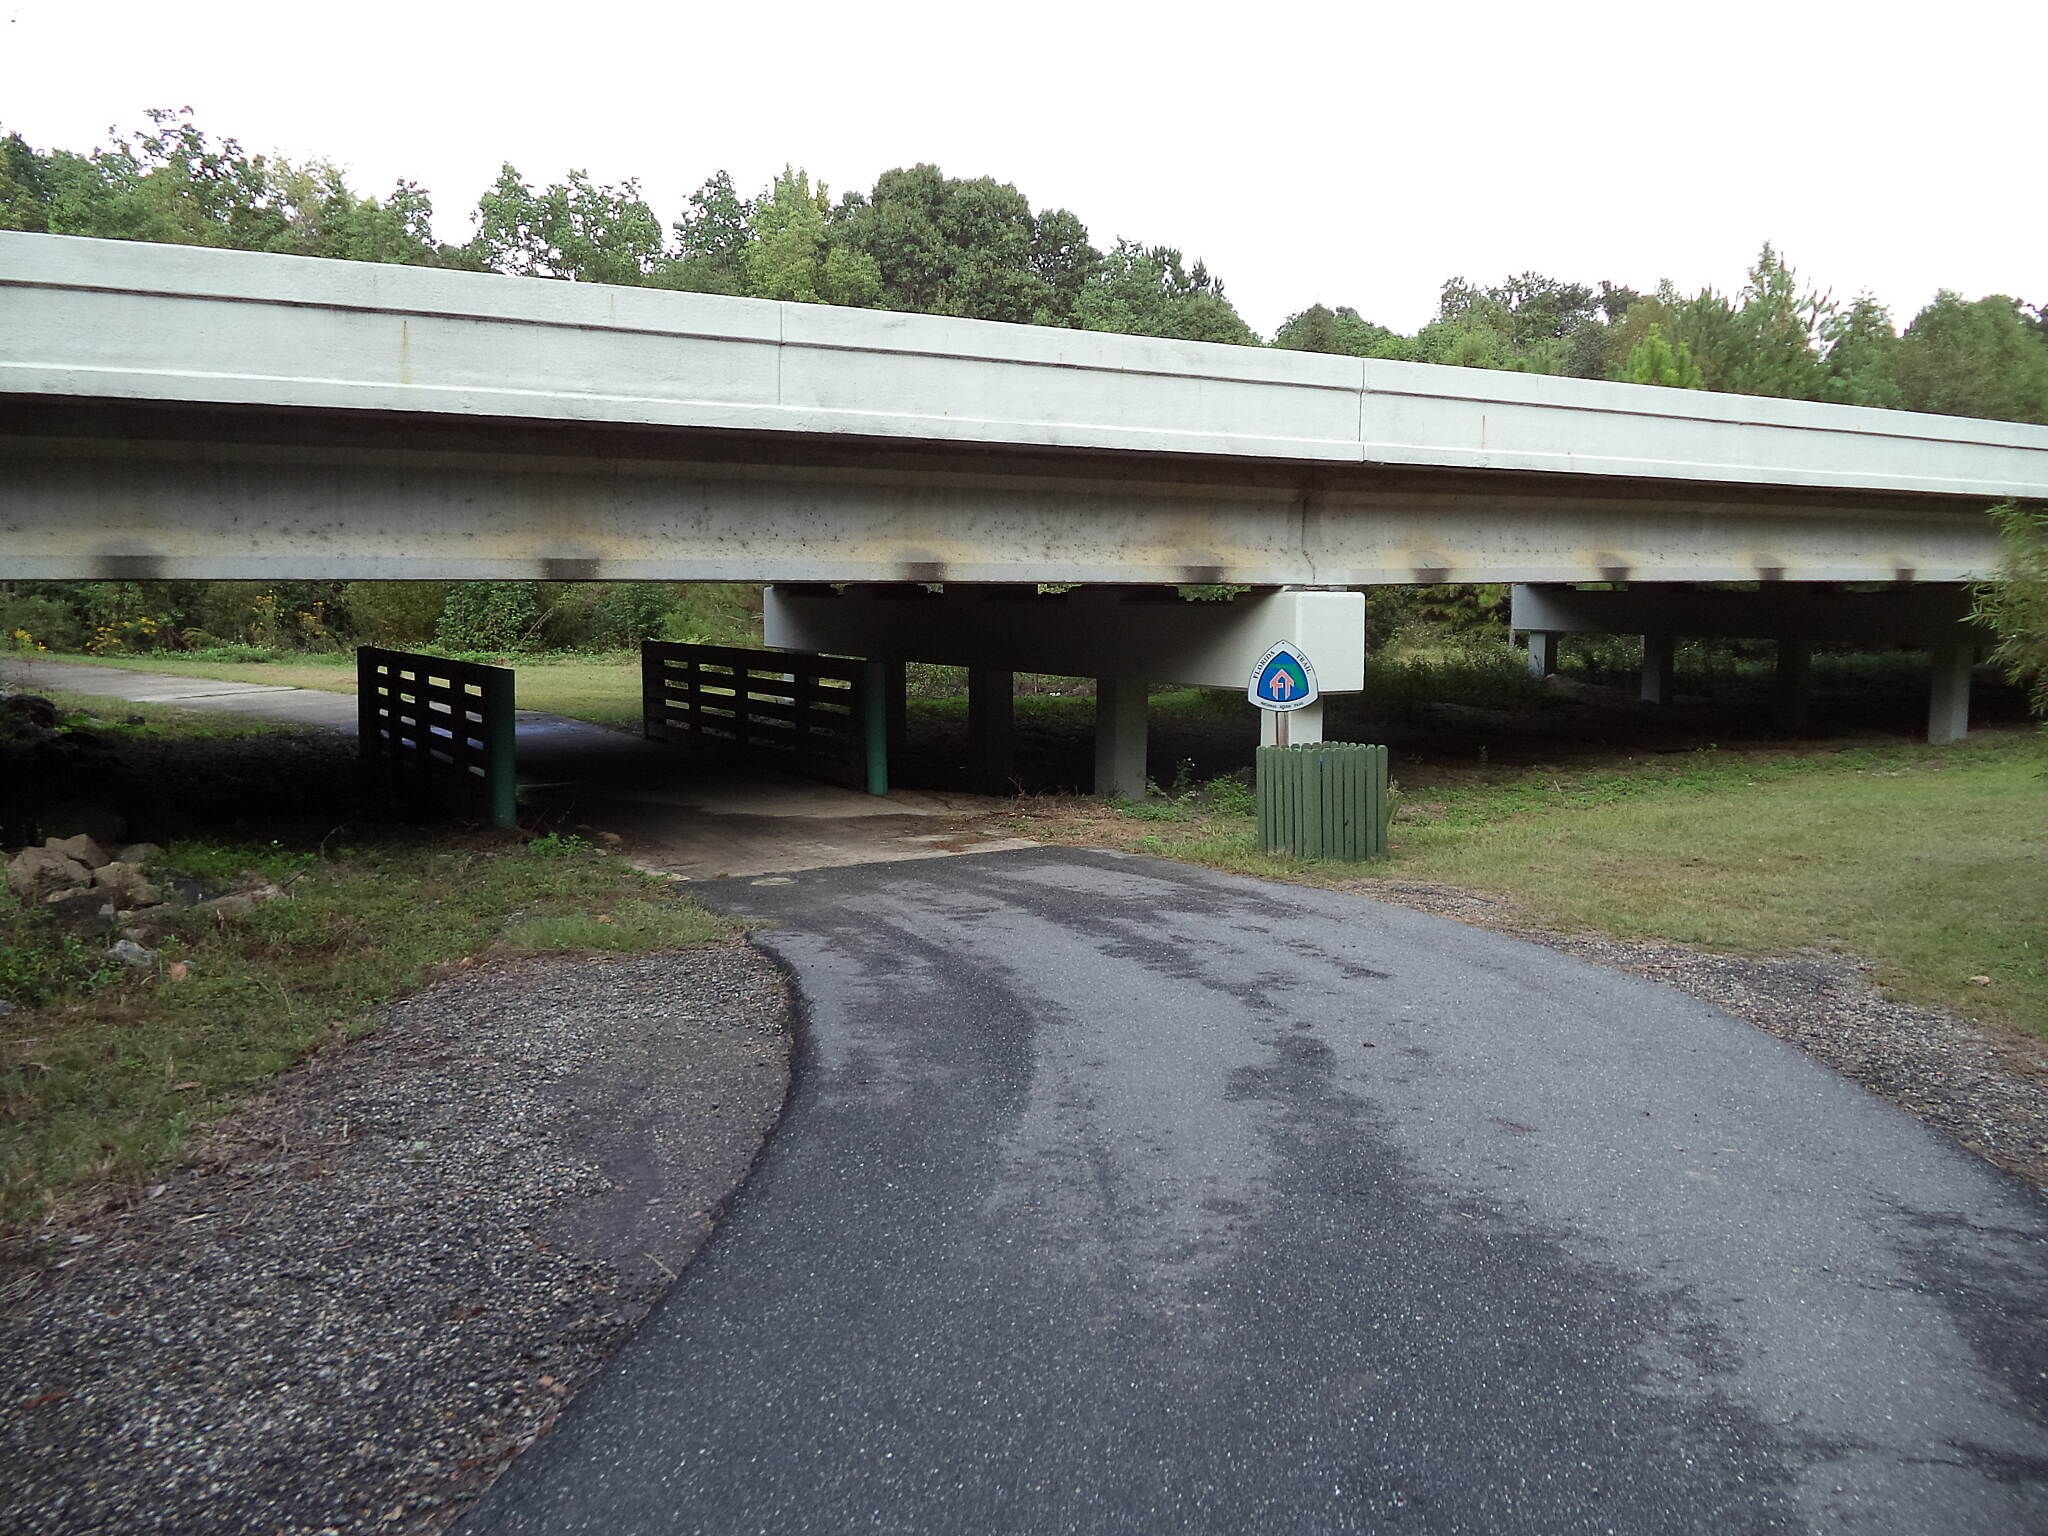 Blountstown Greenway Bike Path At SR 20 The path goes under SR 20.